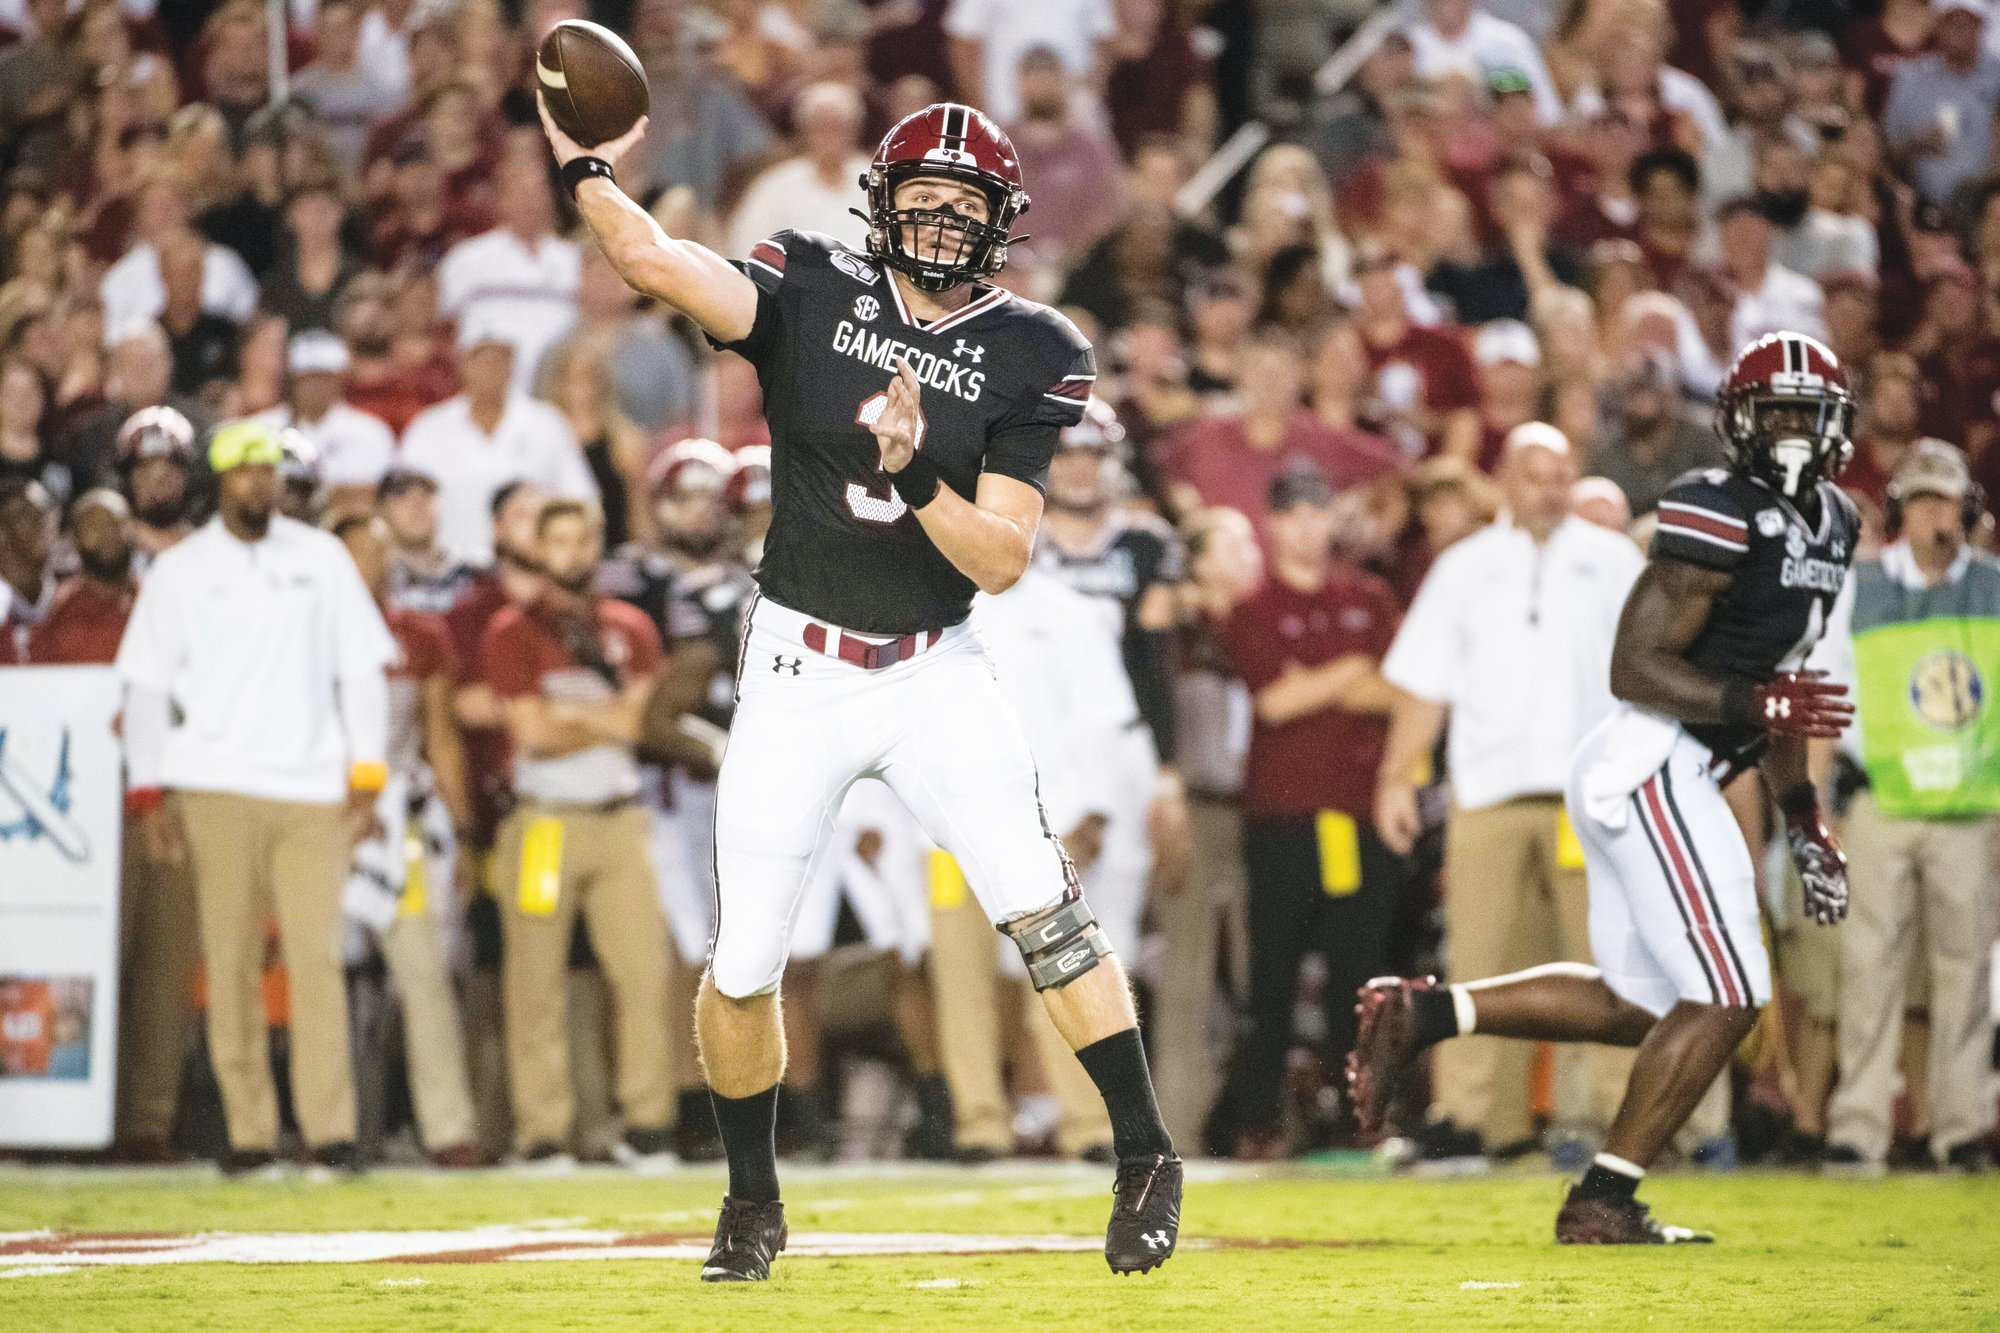 South Carolina quarterback Ryan Hilinski (3) and the Gamecocks will look to upset No. 3 Georgia on the road on Saturday.